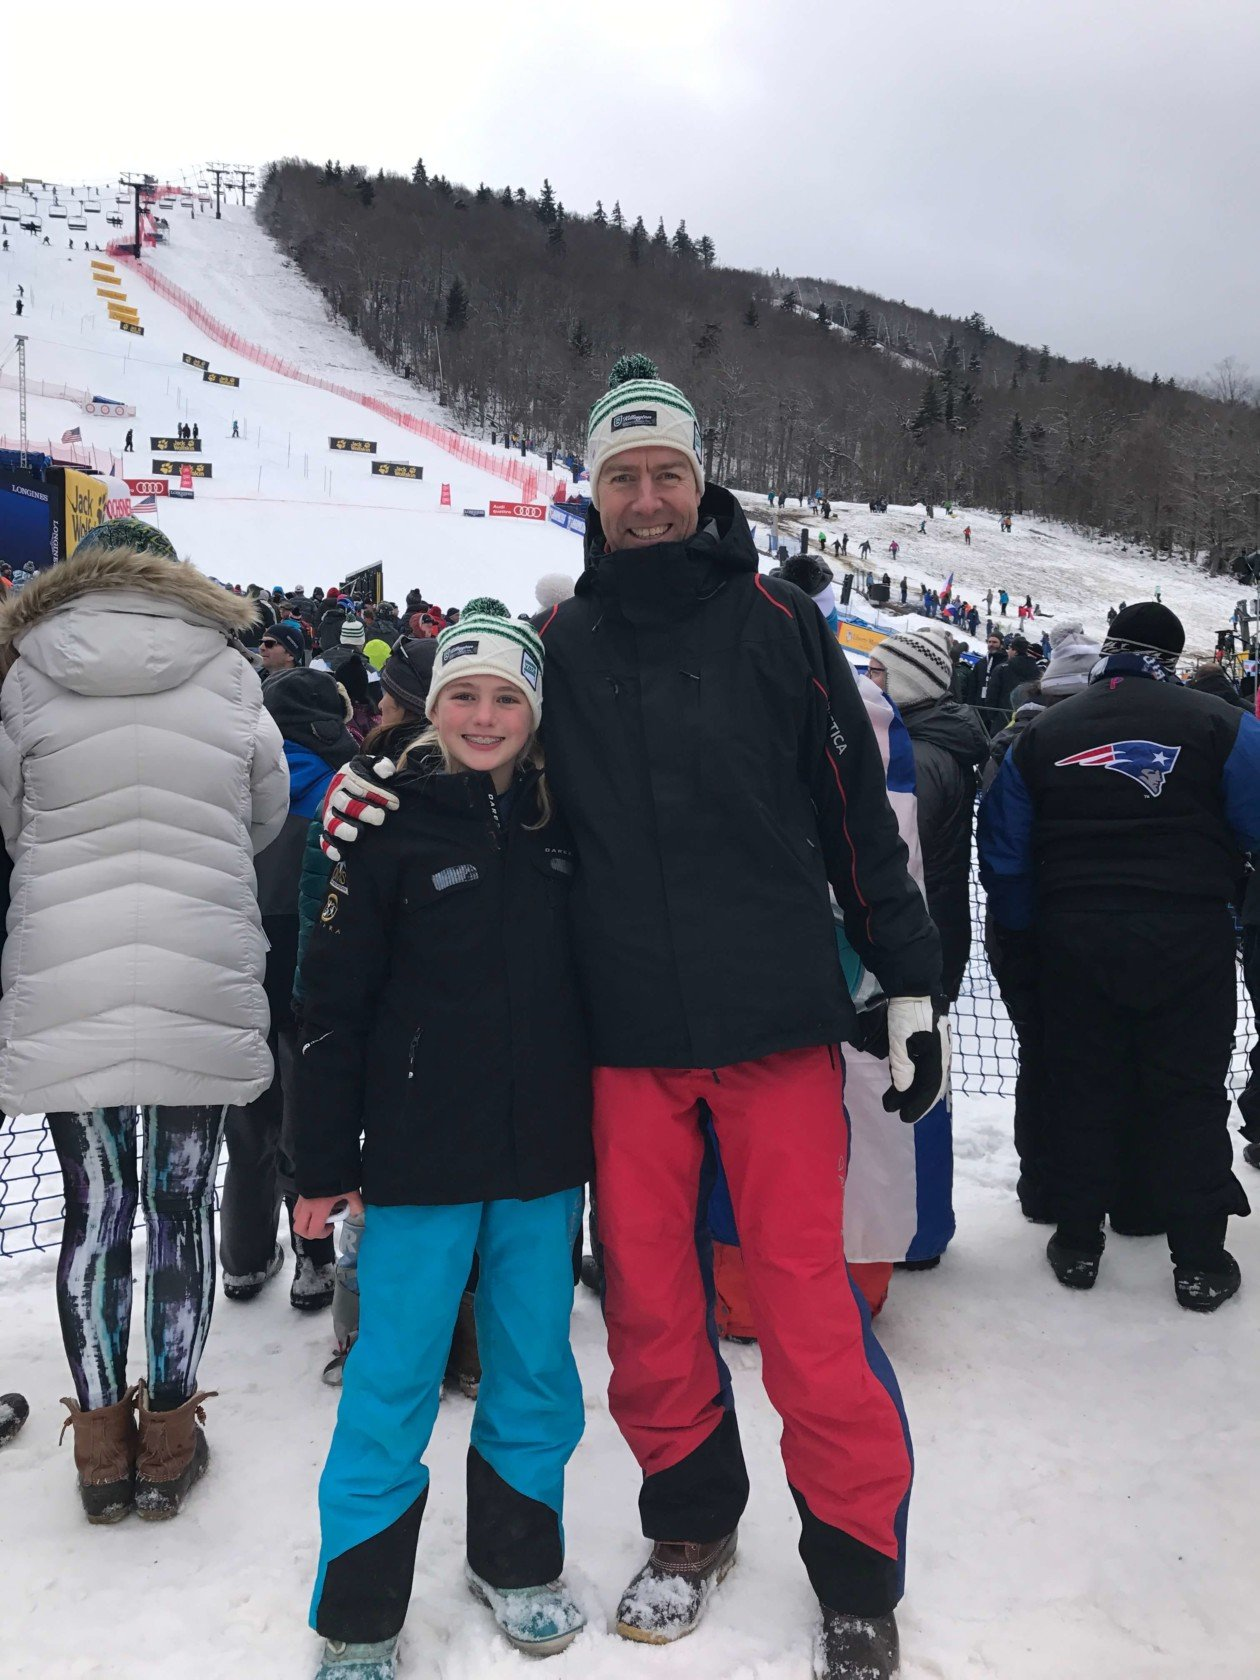 Father and daughter in Arctica apparel.